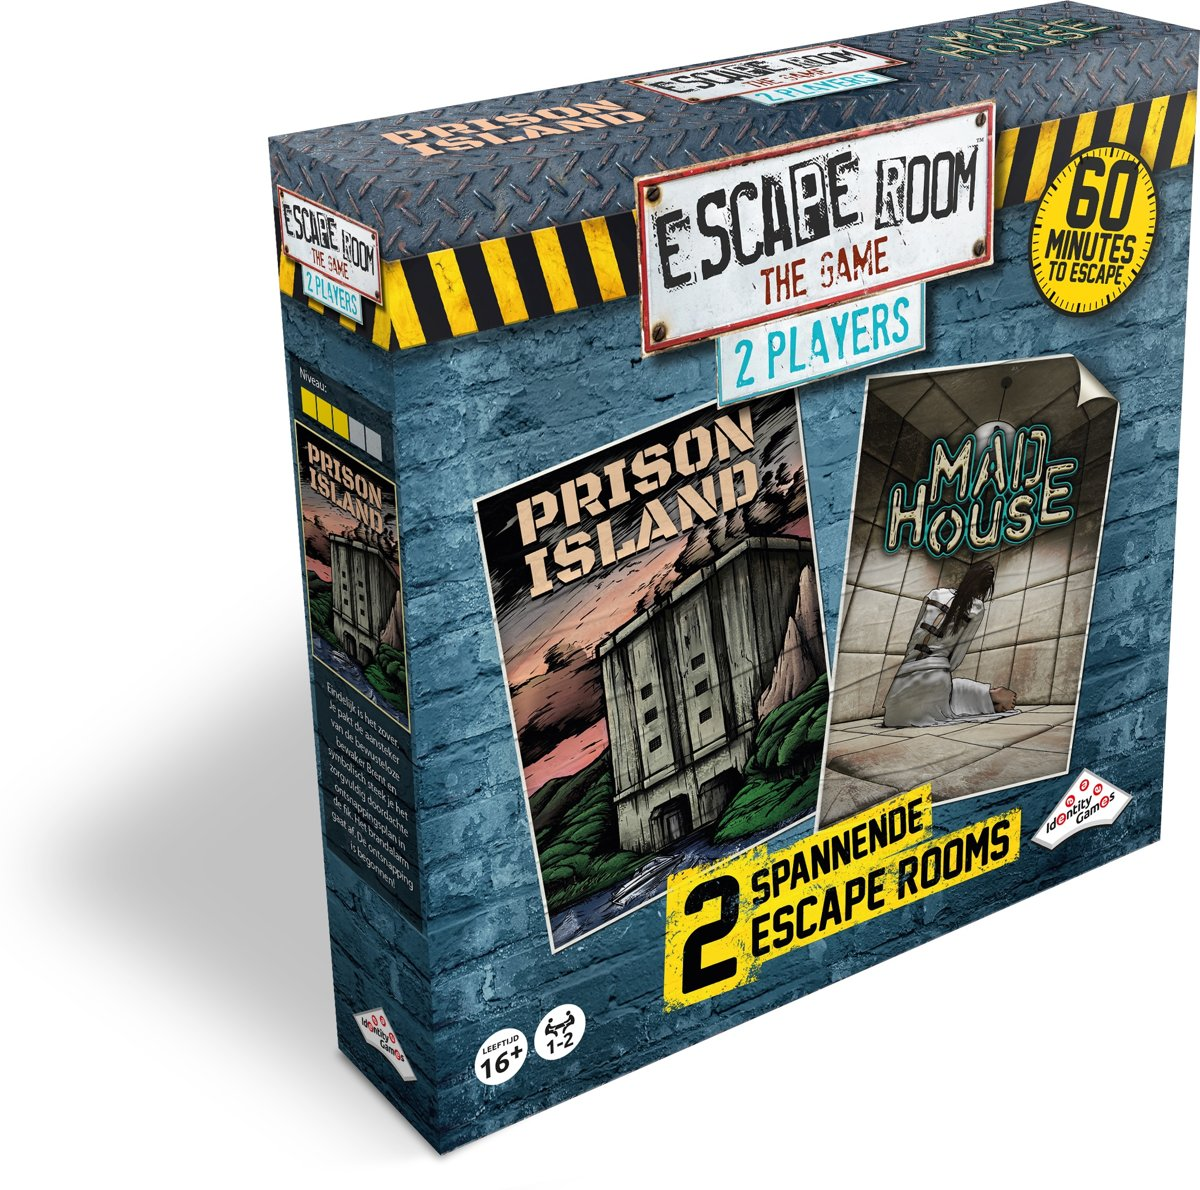 Escape Room The Game: 2 Player